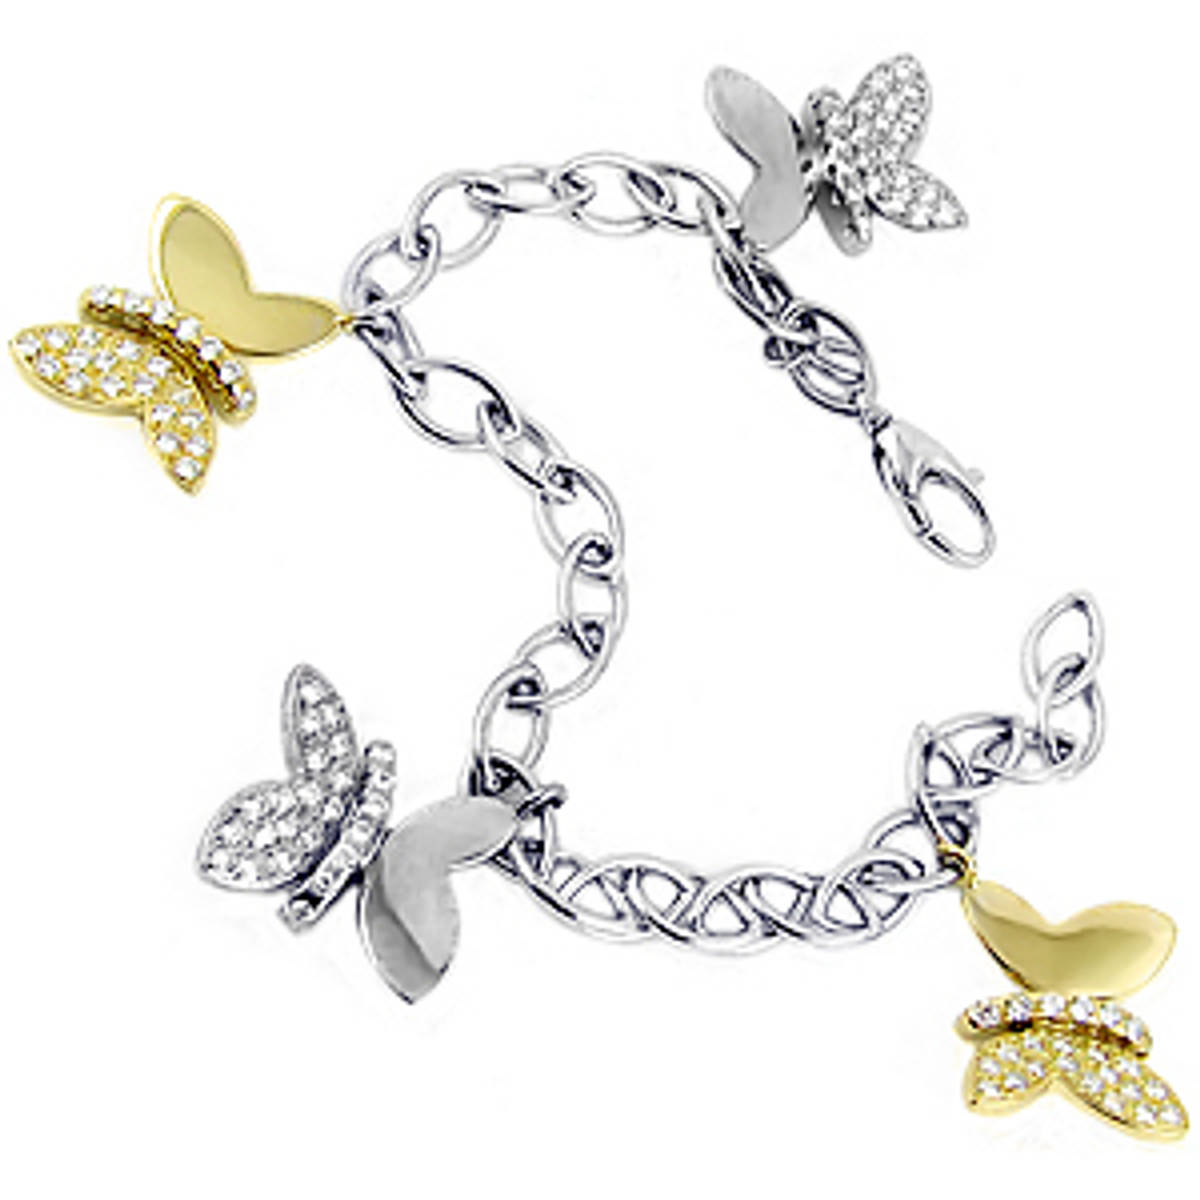 Diamond butterfly bracelet in 18 ct white/yellow gold